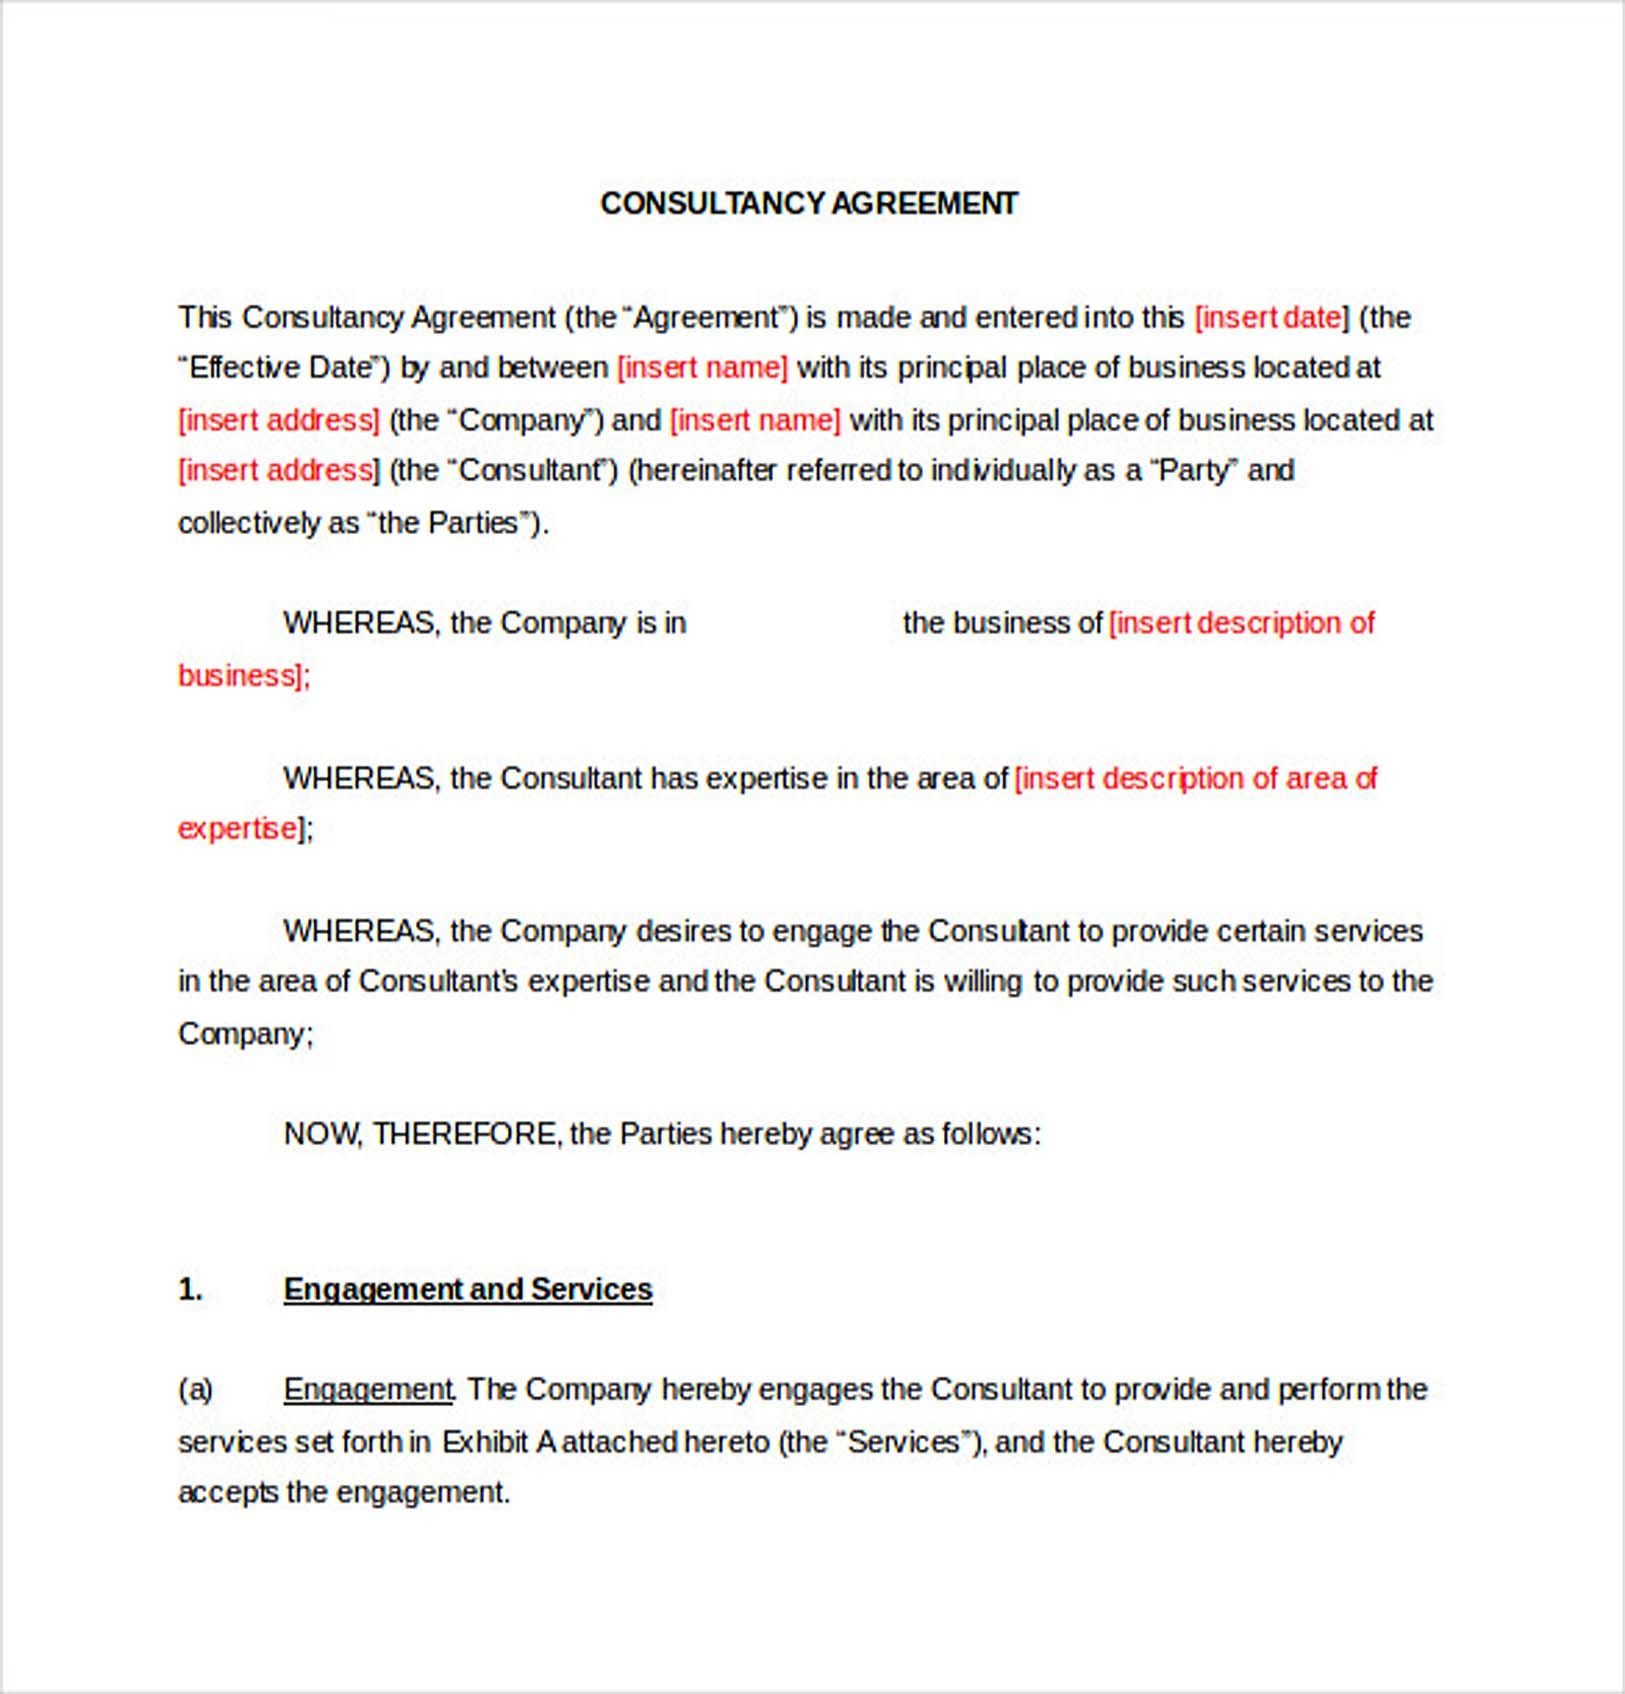 Consultancy Consulting Agreement 9 Consulting Agreement Template Understanding About Consulting Agreement Template Is Recommended For You Who Want To Know